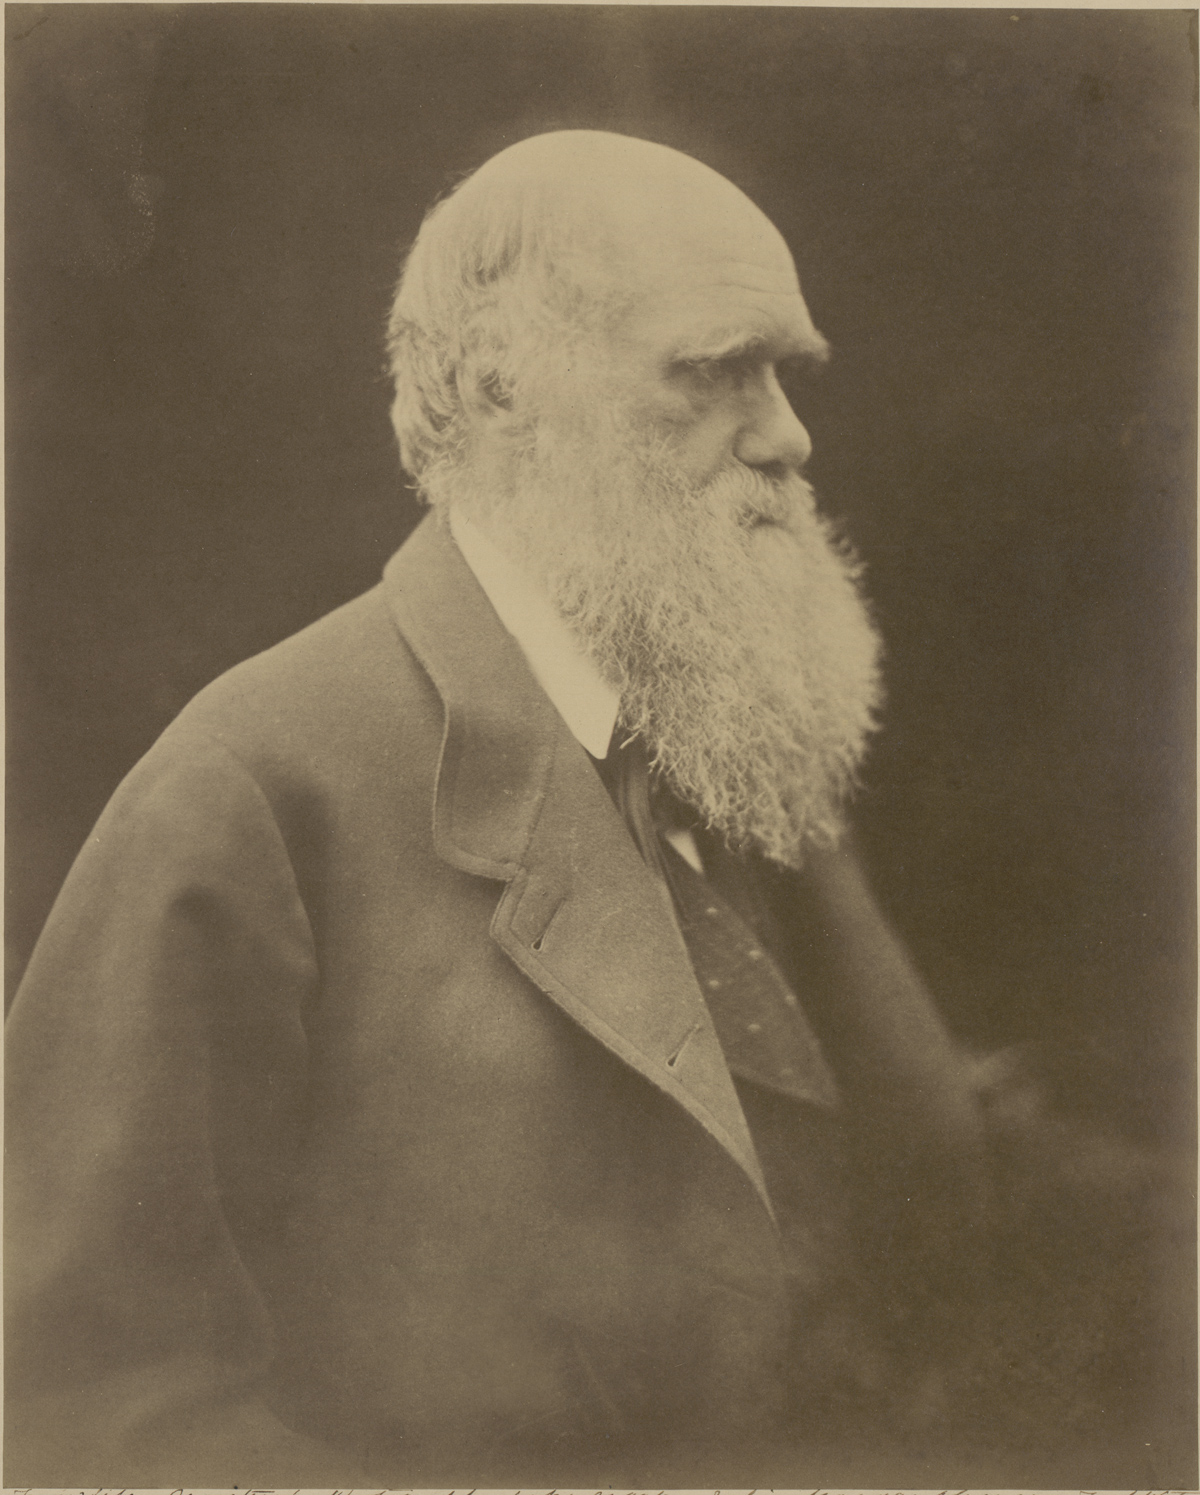 Julia Margaret Cameron (British, 1815–1879), Ch. Darwin, 1868. Albumen print, 28.5 x 22.7 cm. Gernsheim Collection, Harry Ransom Center.